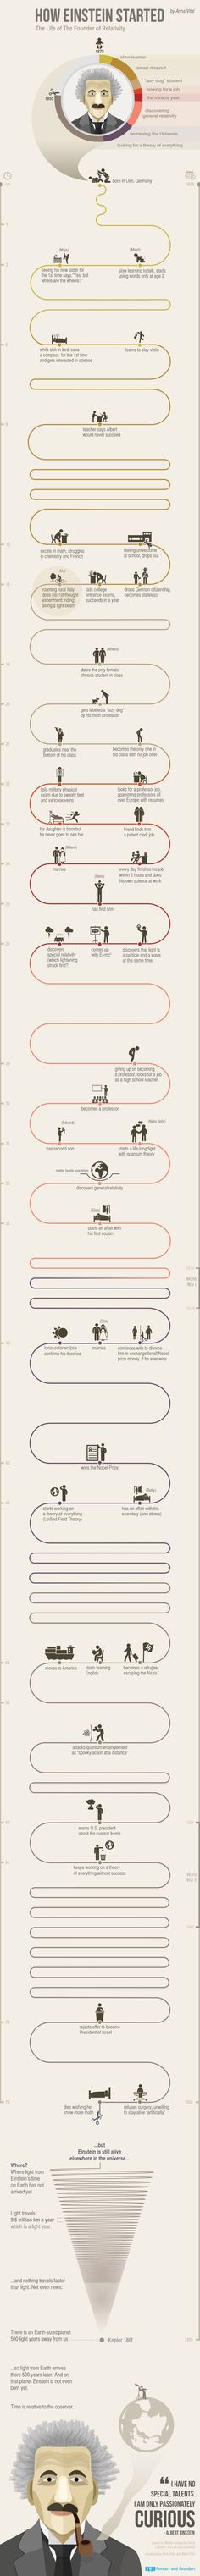 Psychology infographic and charts How Einstein went from 'lazy dog' to Nobel Prize winning scientist Infographic Description How Einstein went from 'lazy